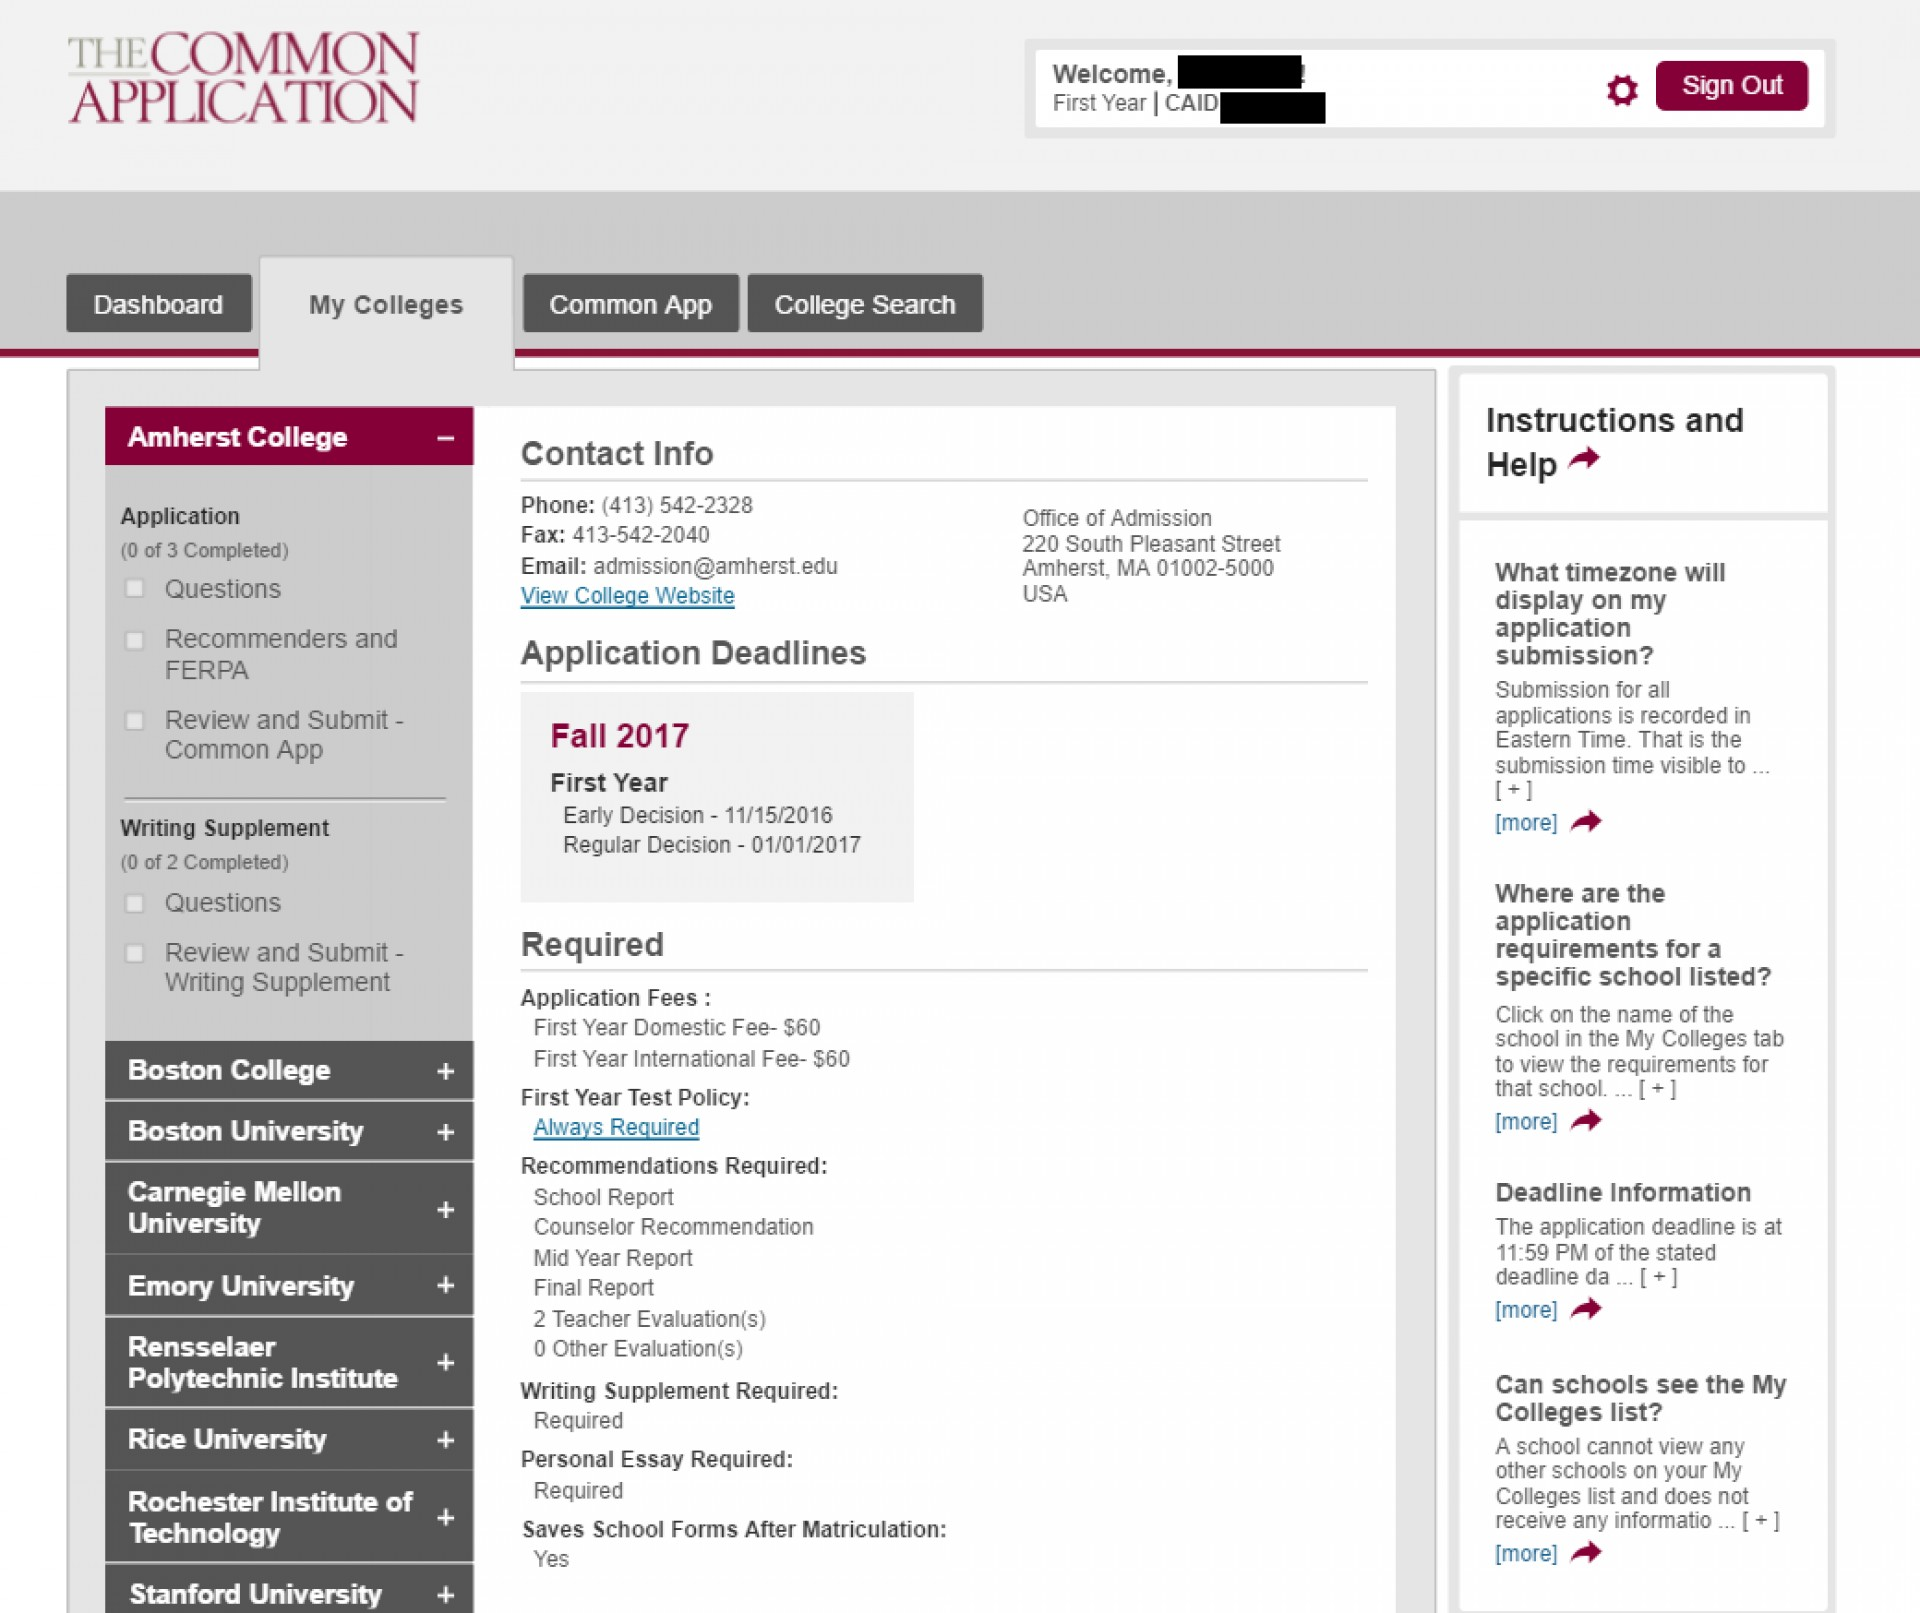 020 Common App Examples My Colleges Best Example Essays Application Essay Harvard Prompts 2014-15 1920